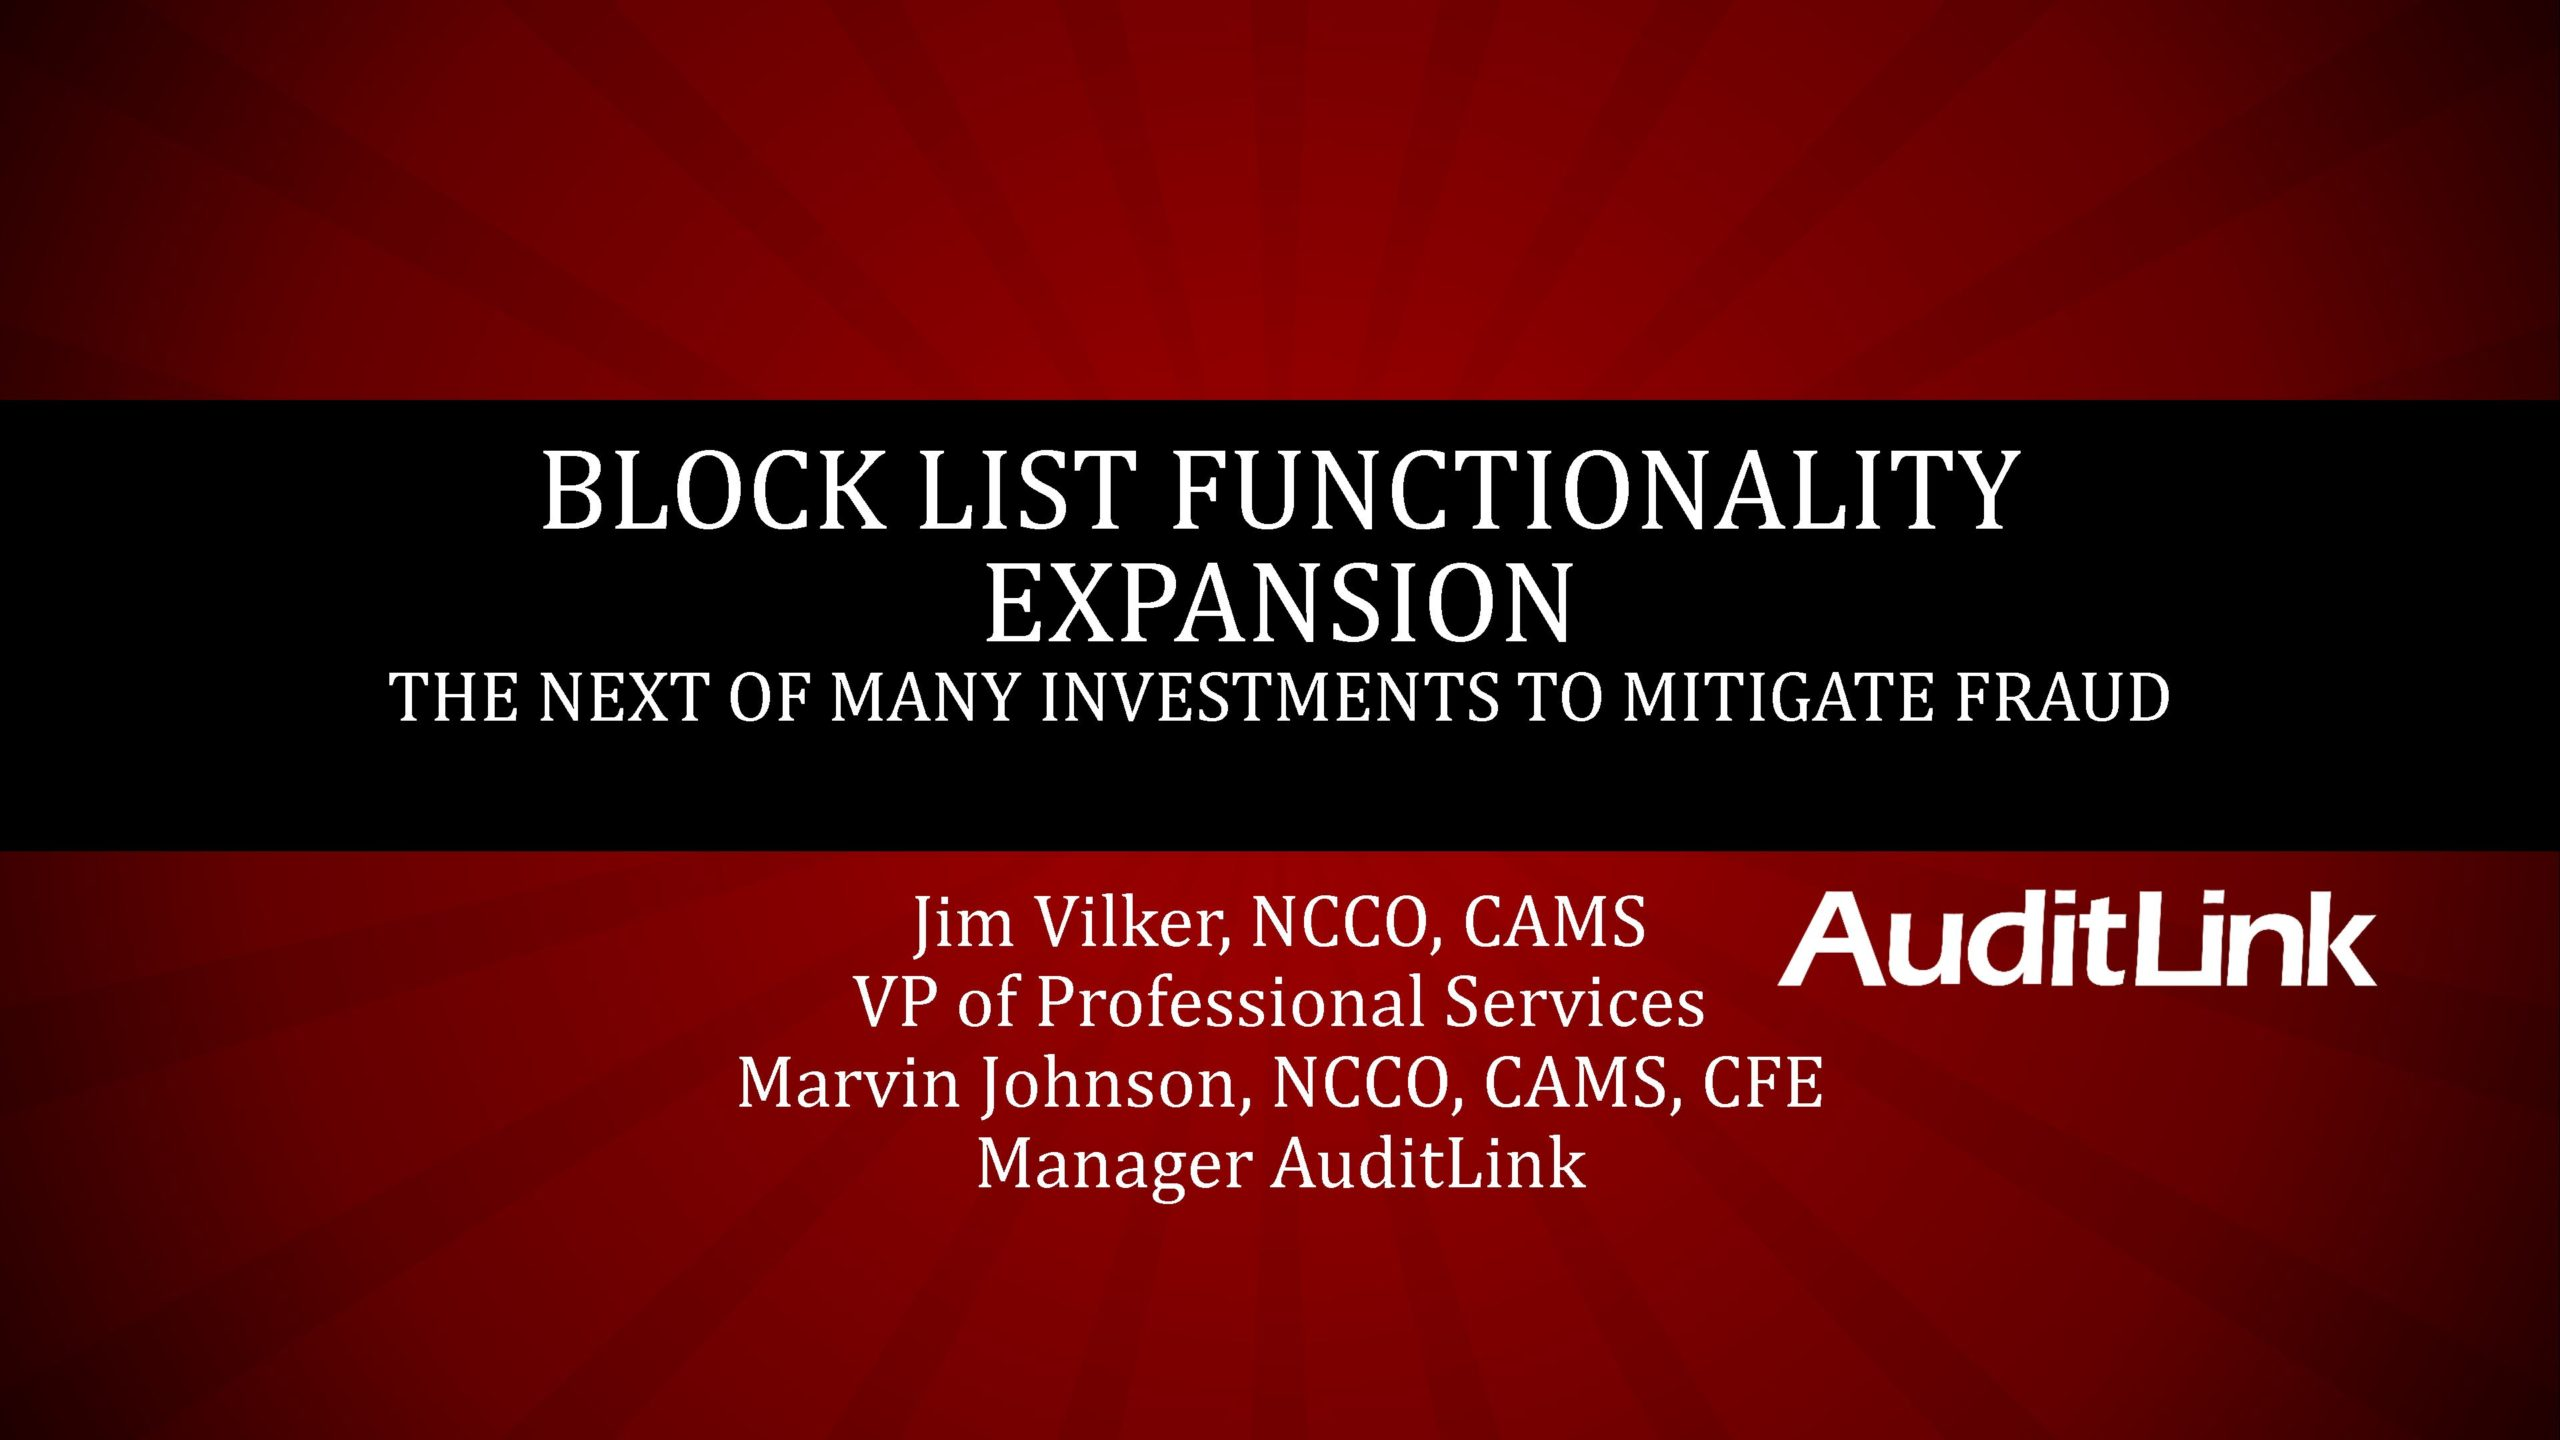 Block List Expansion And Future of Investment In New Functionality